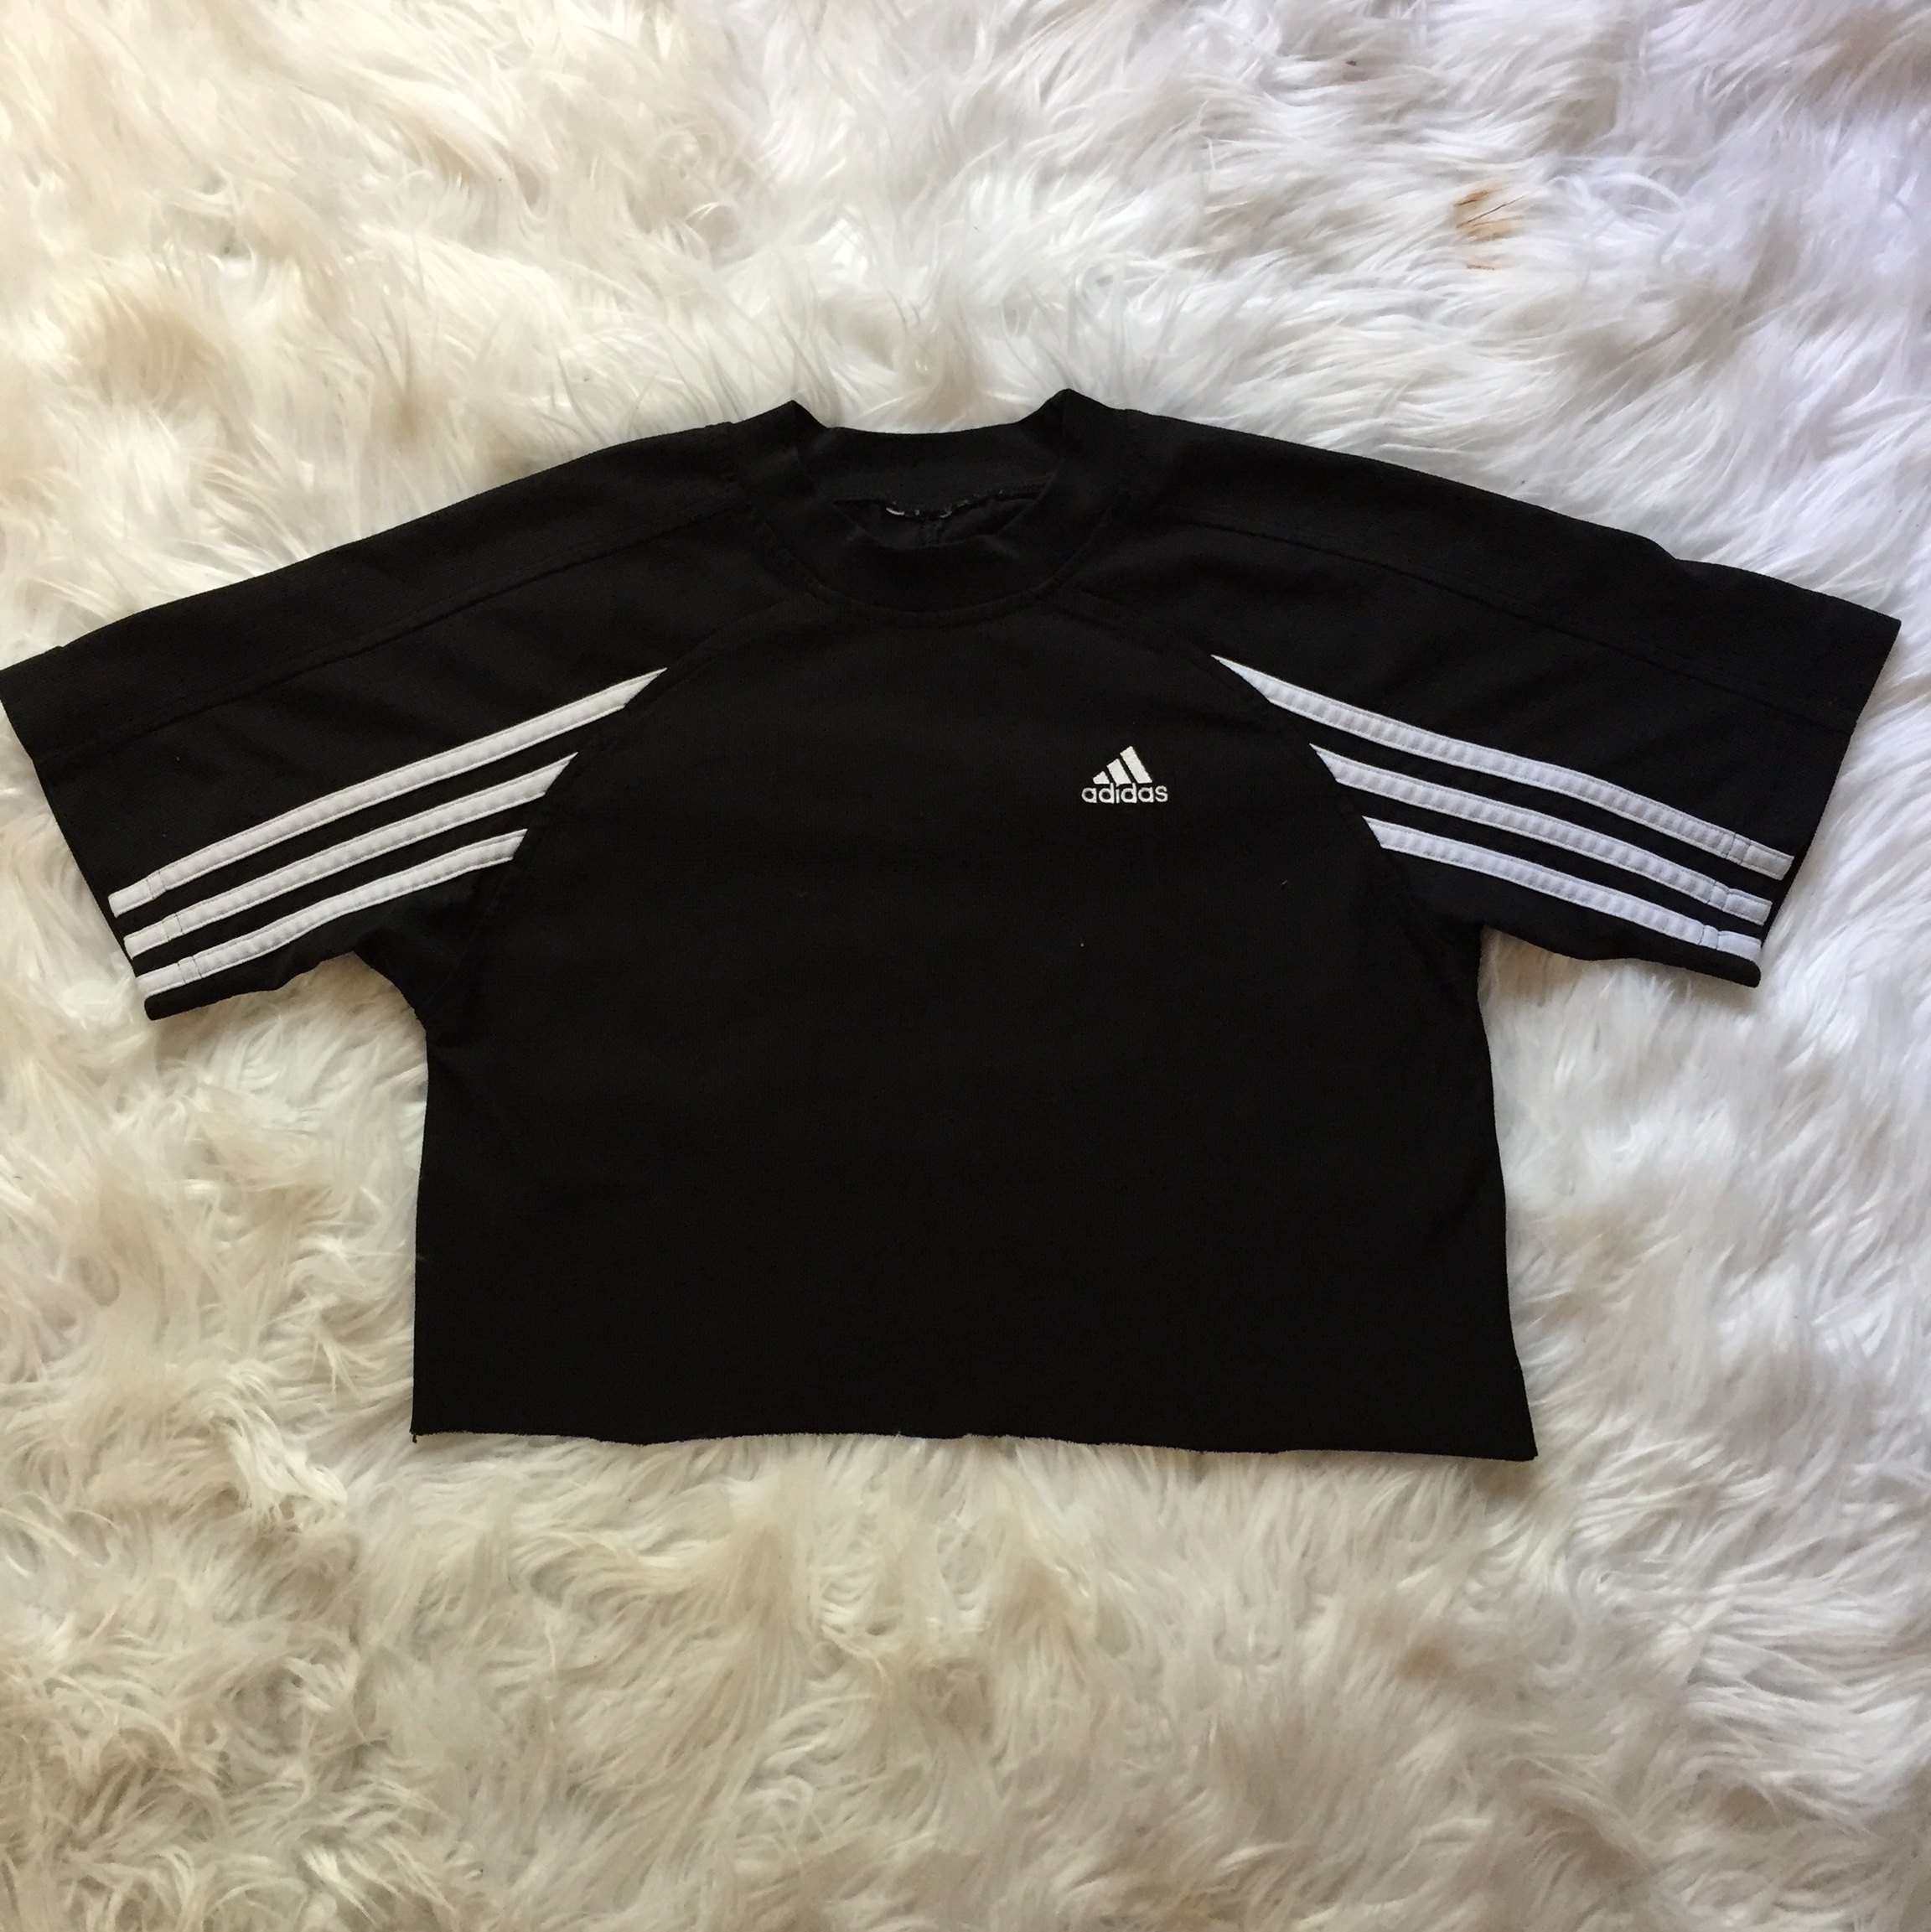 Adidas hand cut crop top. No tag but fits like small Depop